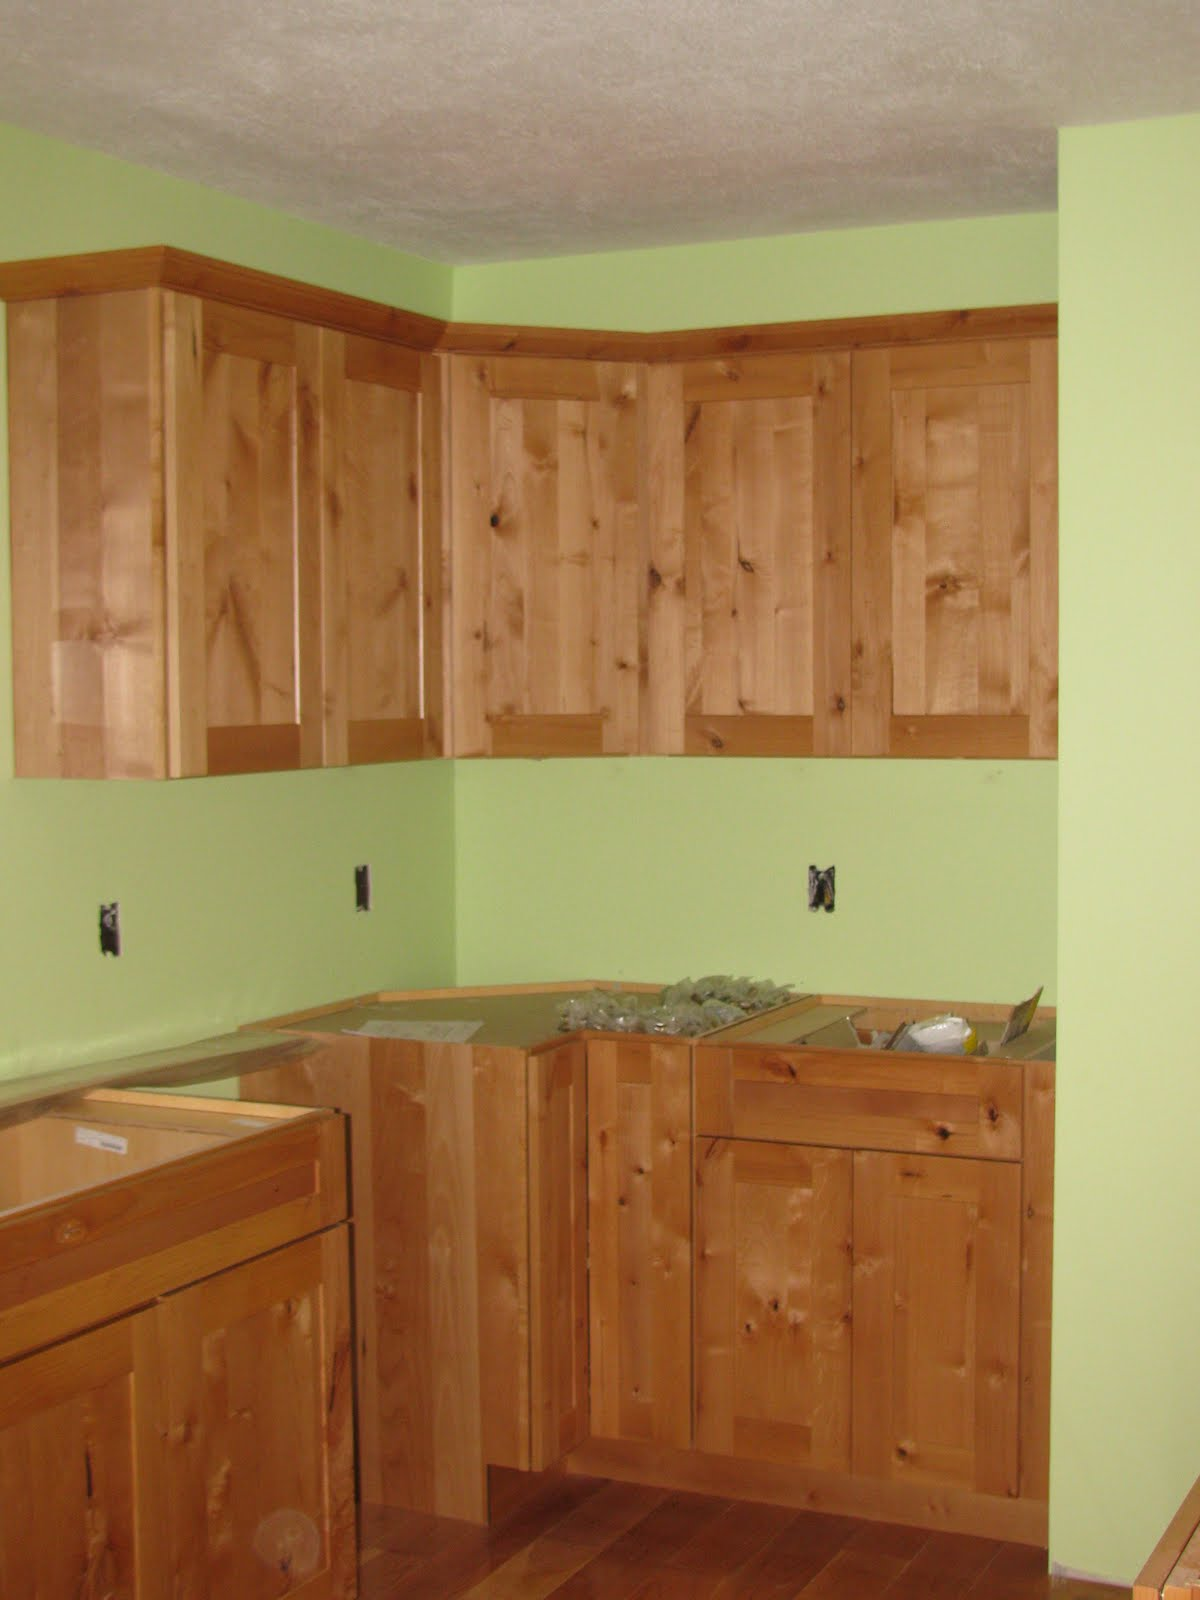 Types Of Crown Molding For Kitchen Cabinets Crown Molding For Kitchen Cabinets